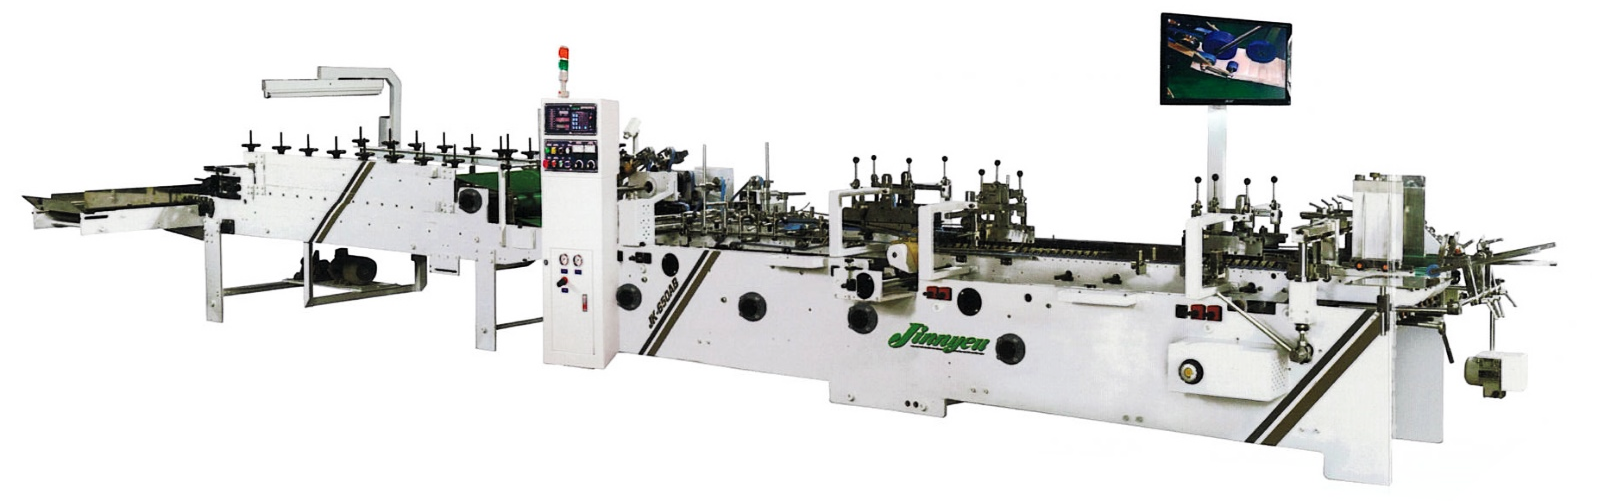 JK-650AB Automatic Folder Gluer Machine